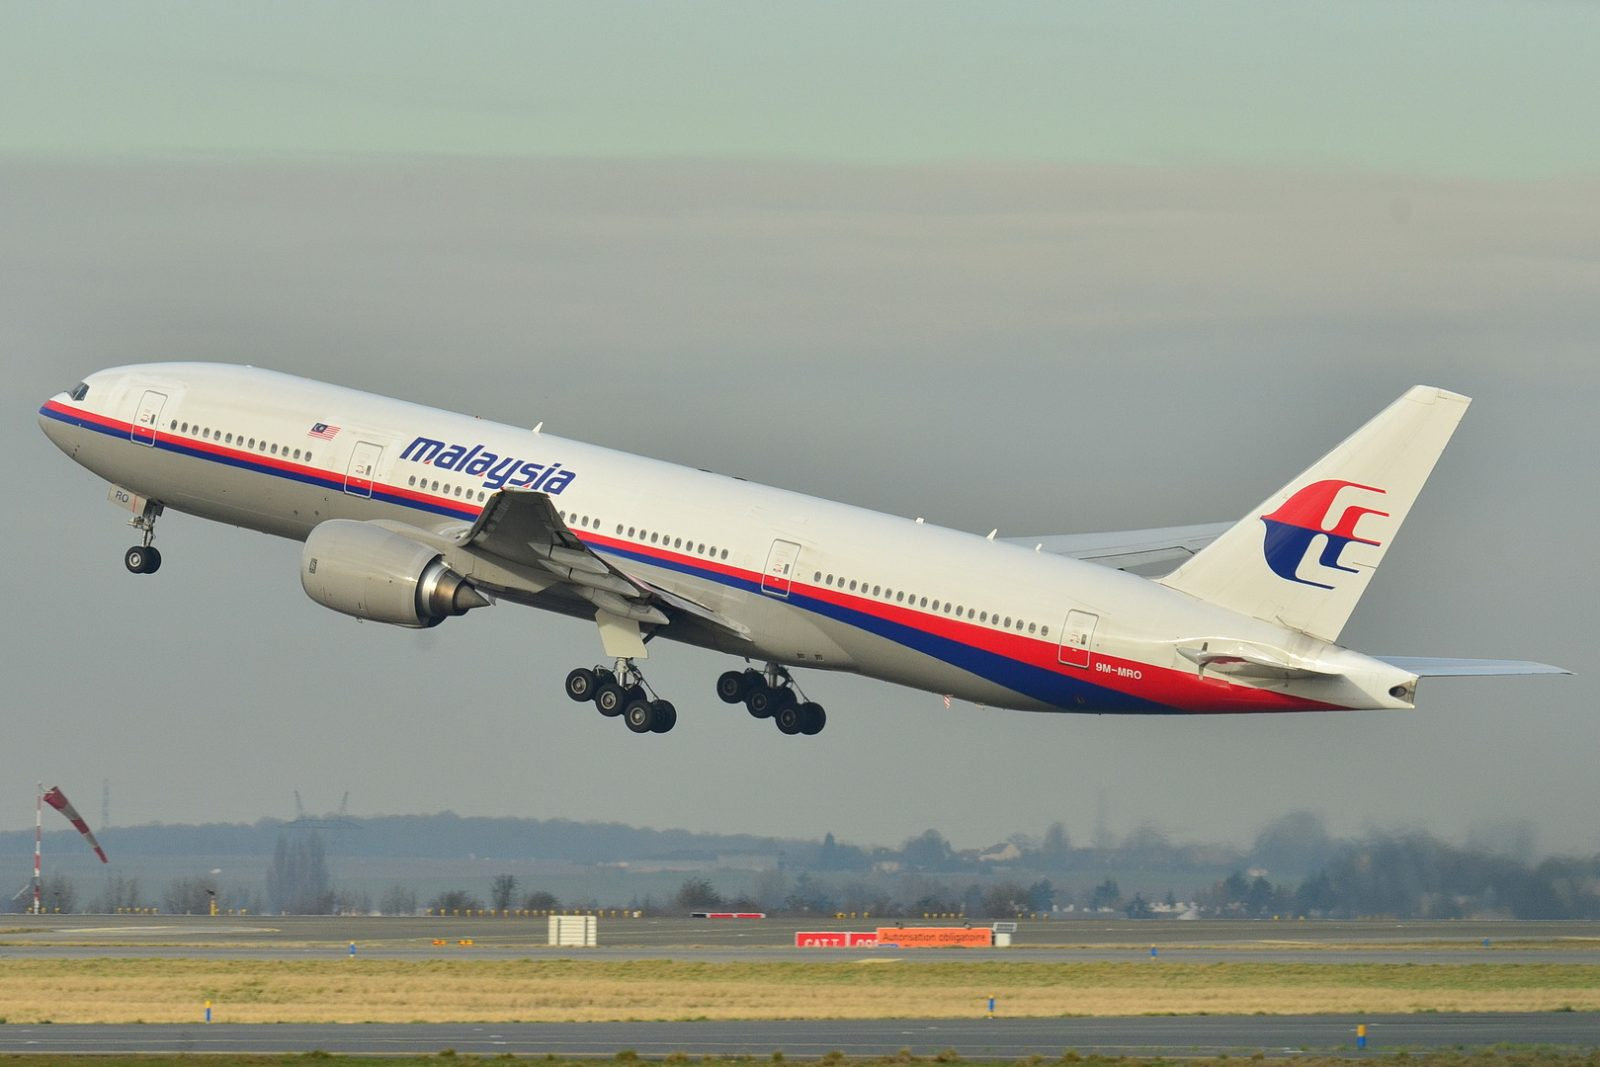 BOEING 777-200, the make and model of Malaysia Airlines MH370. STOCK PHOTO BY RUSSAVIA ON WIKIPEDIA.